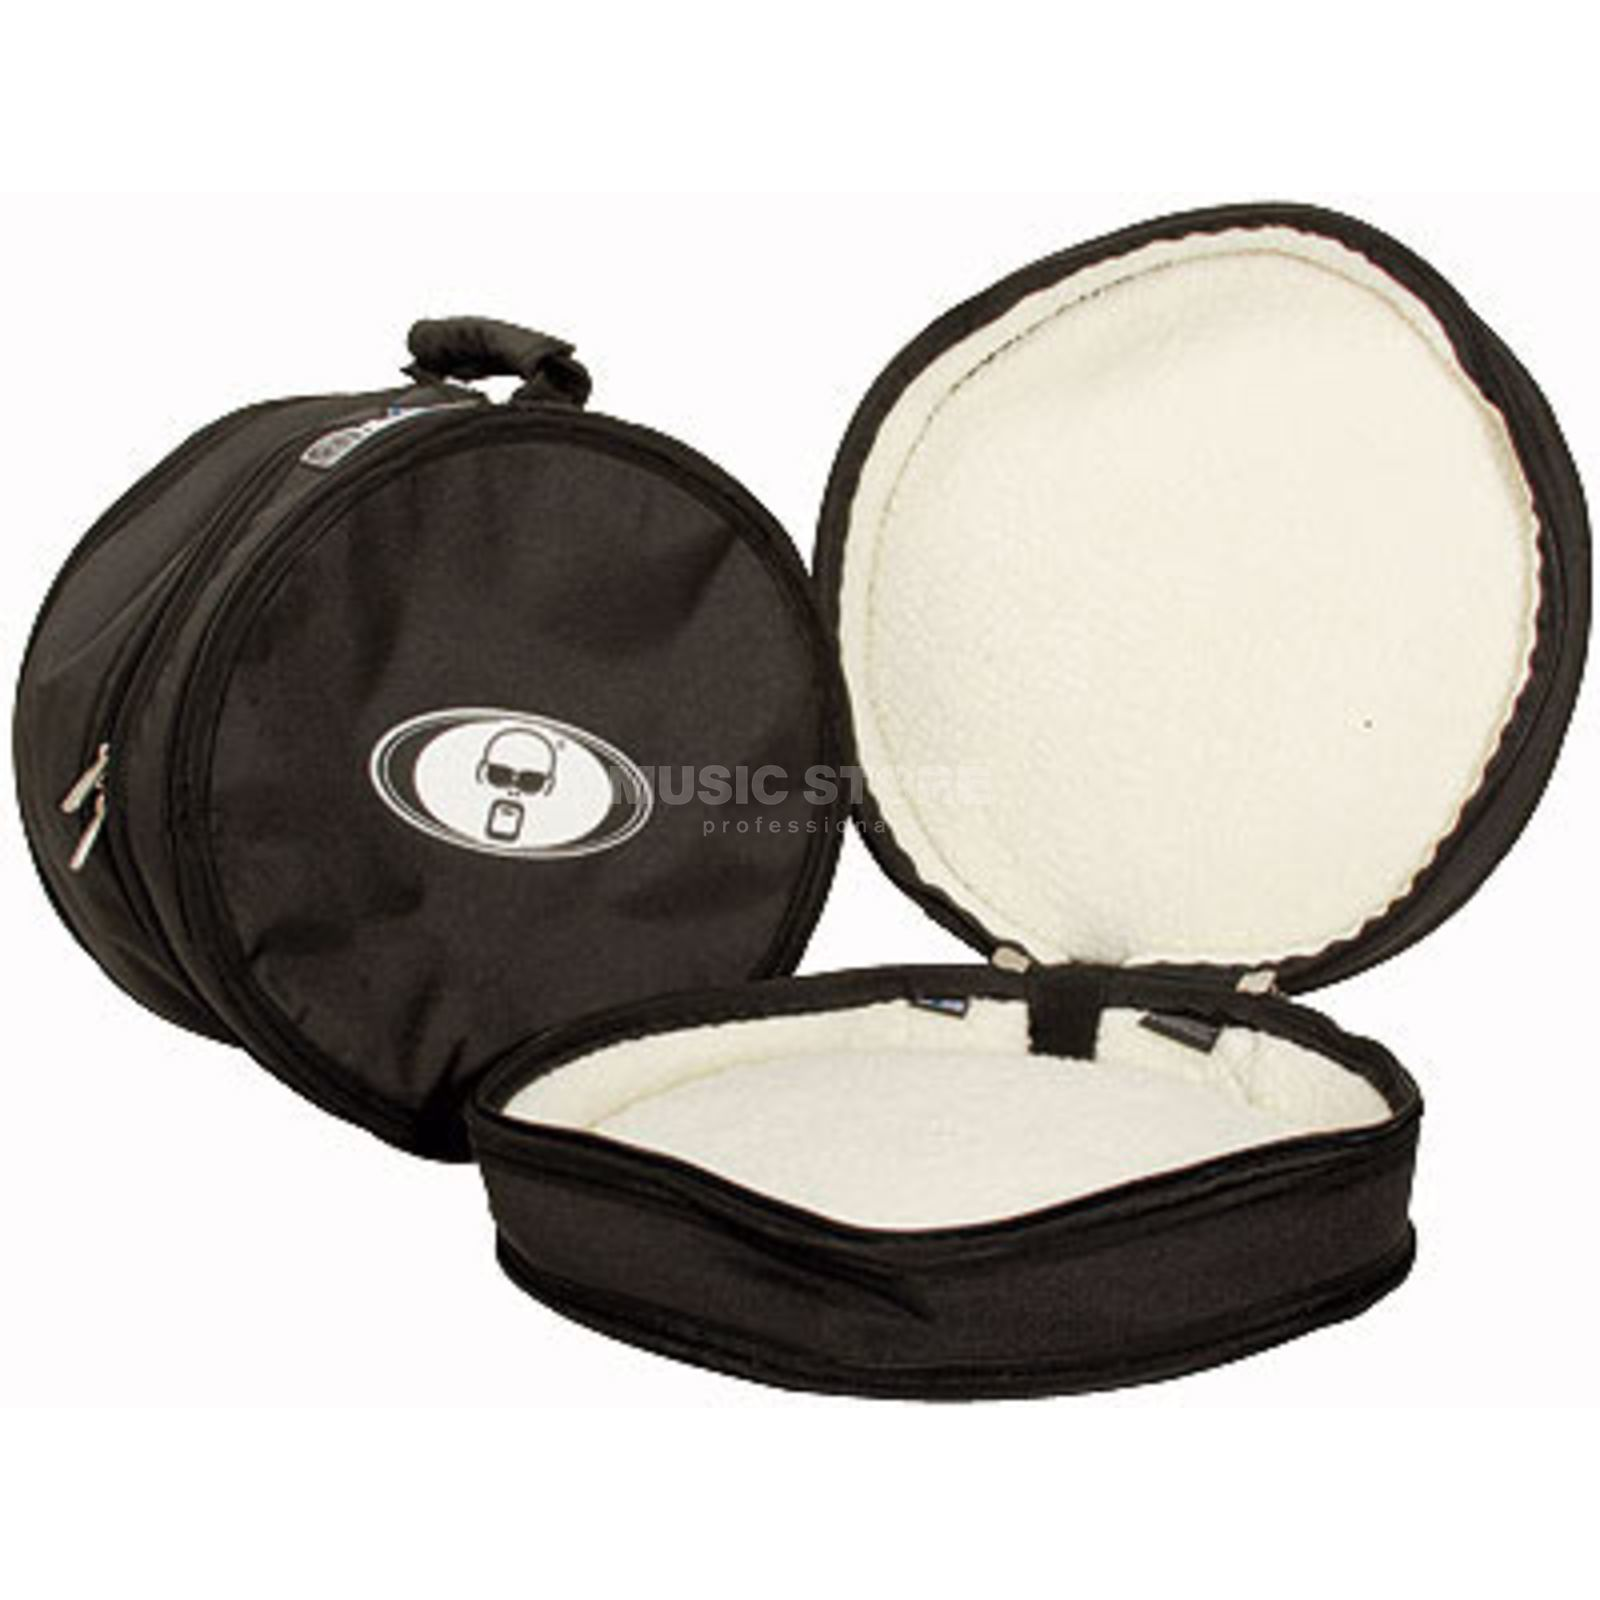 "Protection Racket FloorTom Bag 2014, 14""x14"" Product Image"